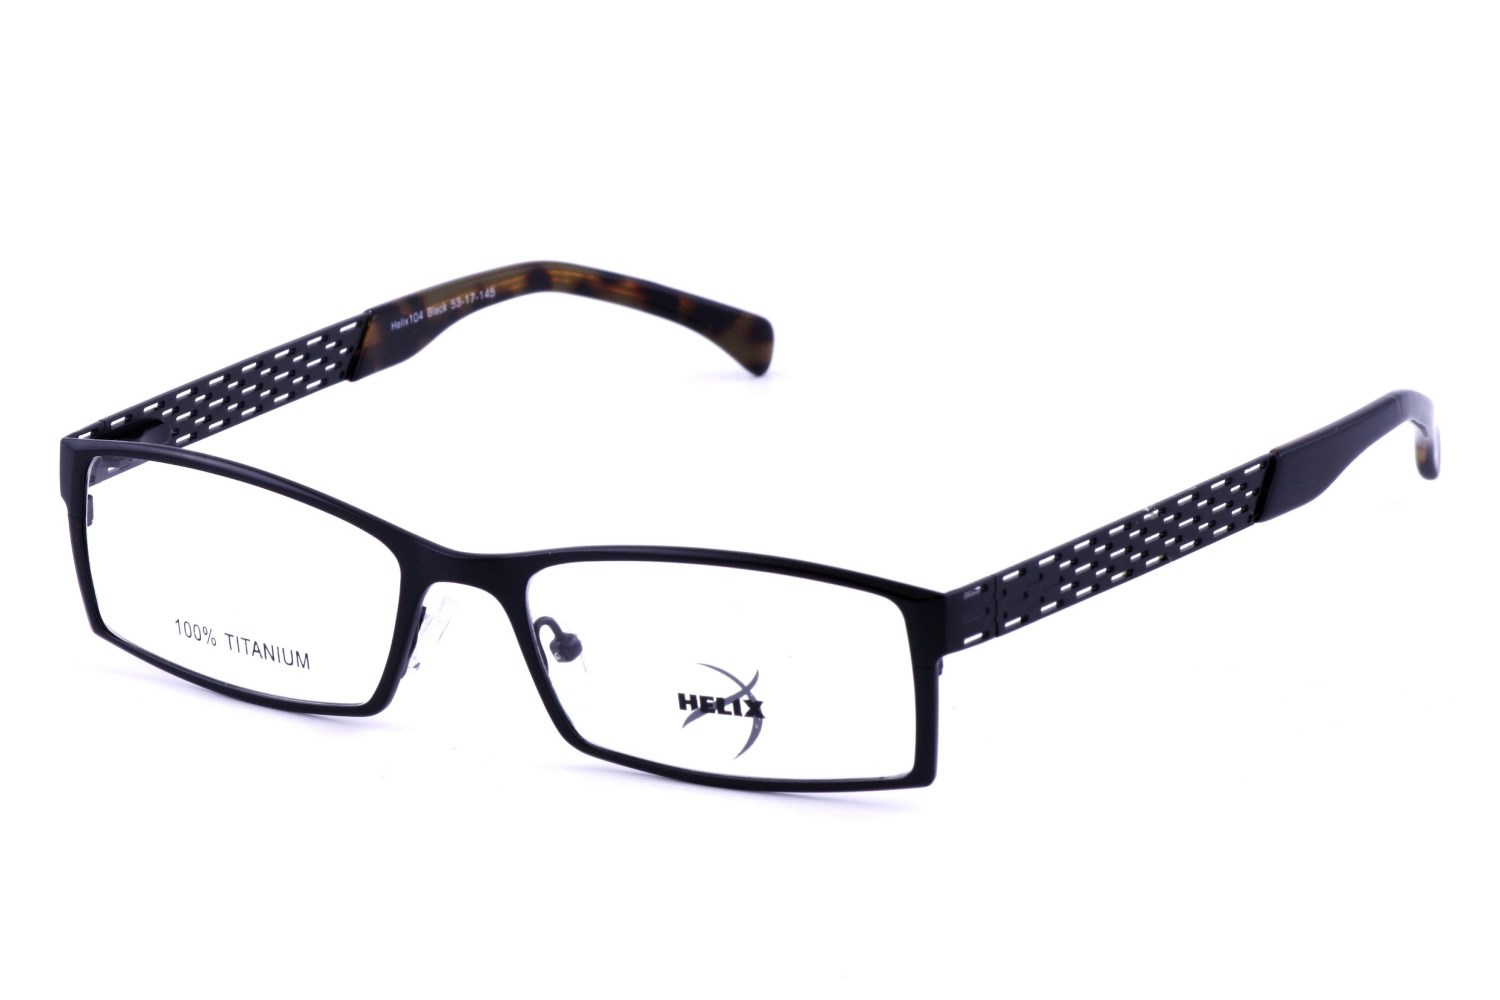 Helix 104 Prescription Eyeglasses Frames